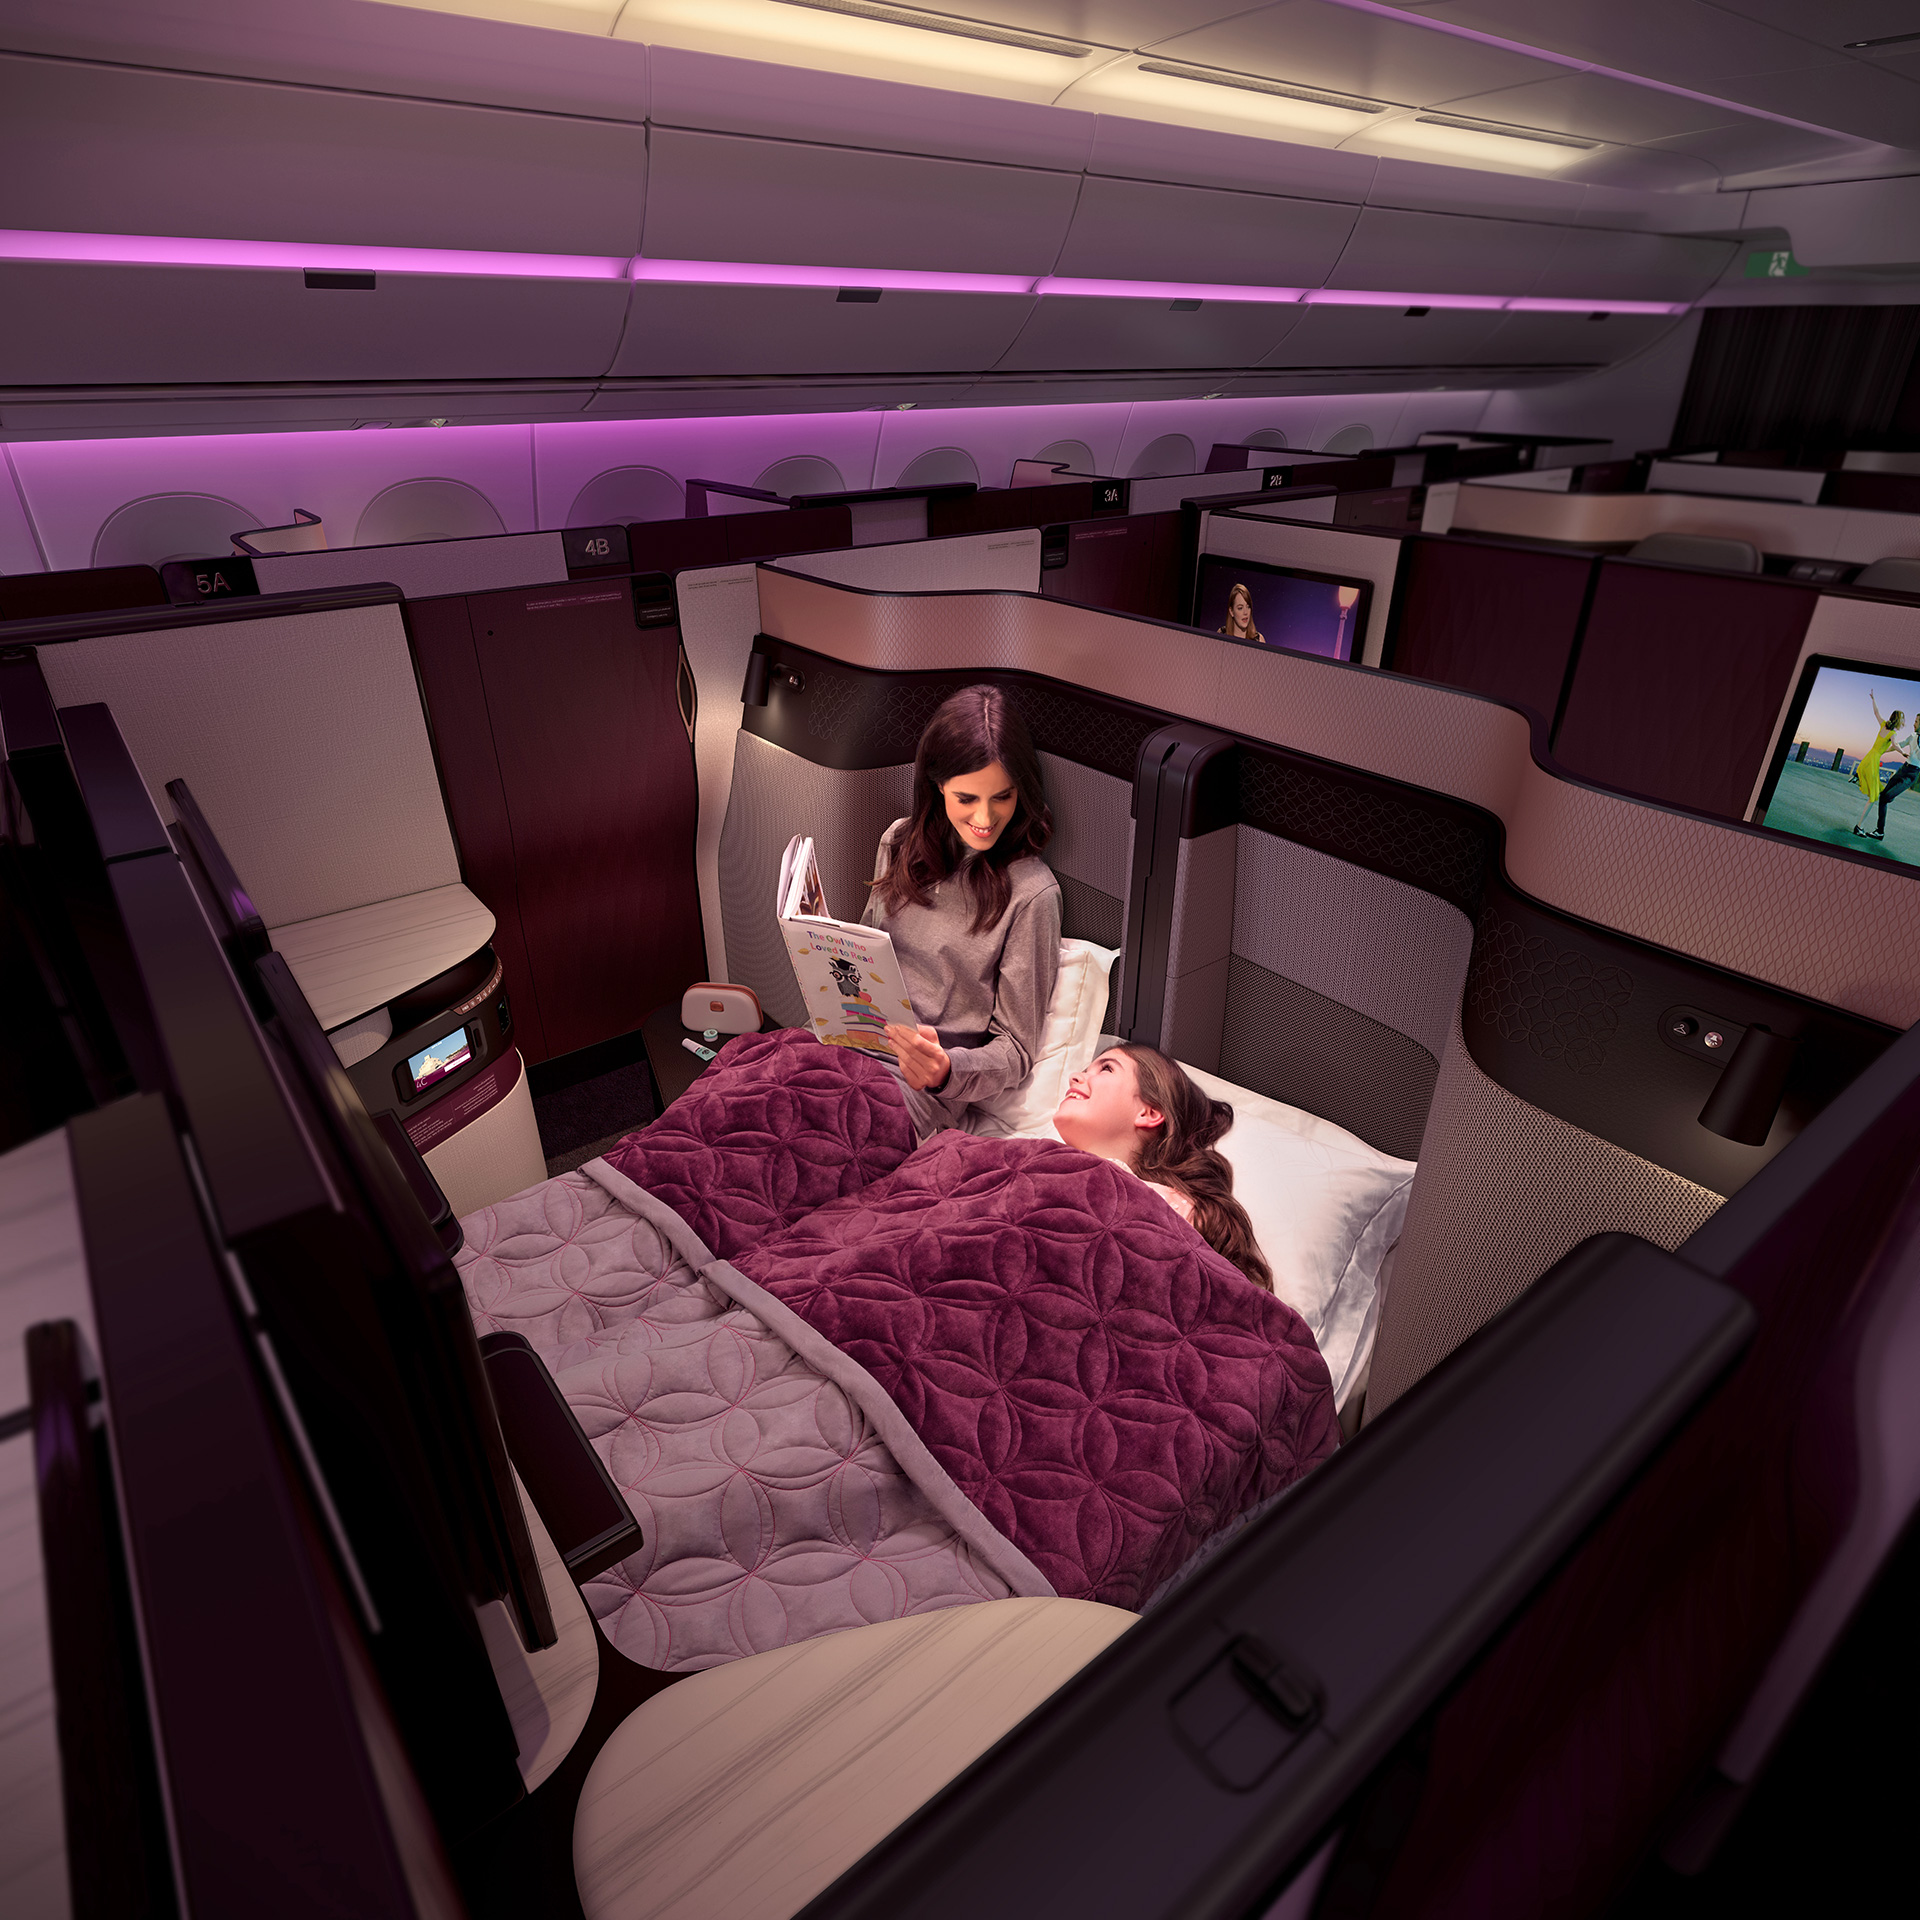 The level of privacy in Qatar Airways seats designed by PriestmanGoode and Qatar Airways can be adjusted at the touch of a button | Paul Priestman | PriestmanGoode | STIRworld